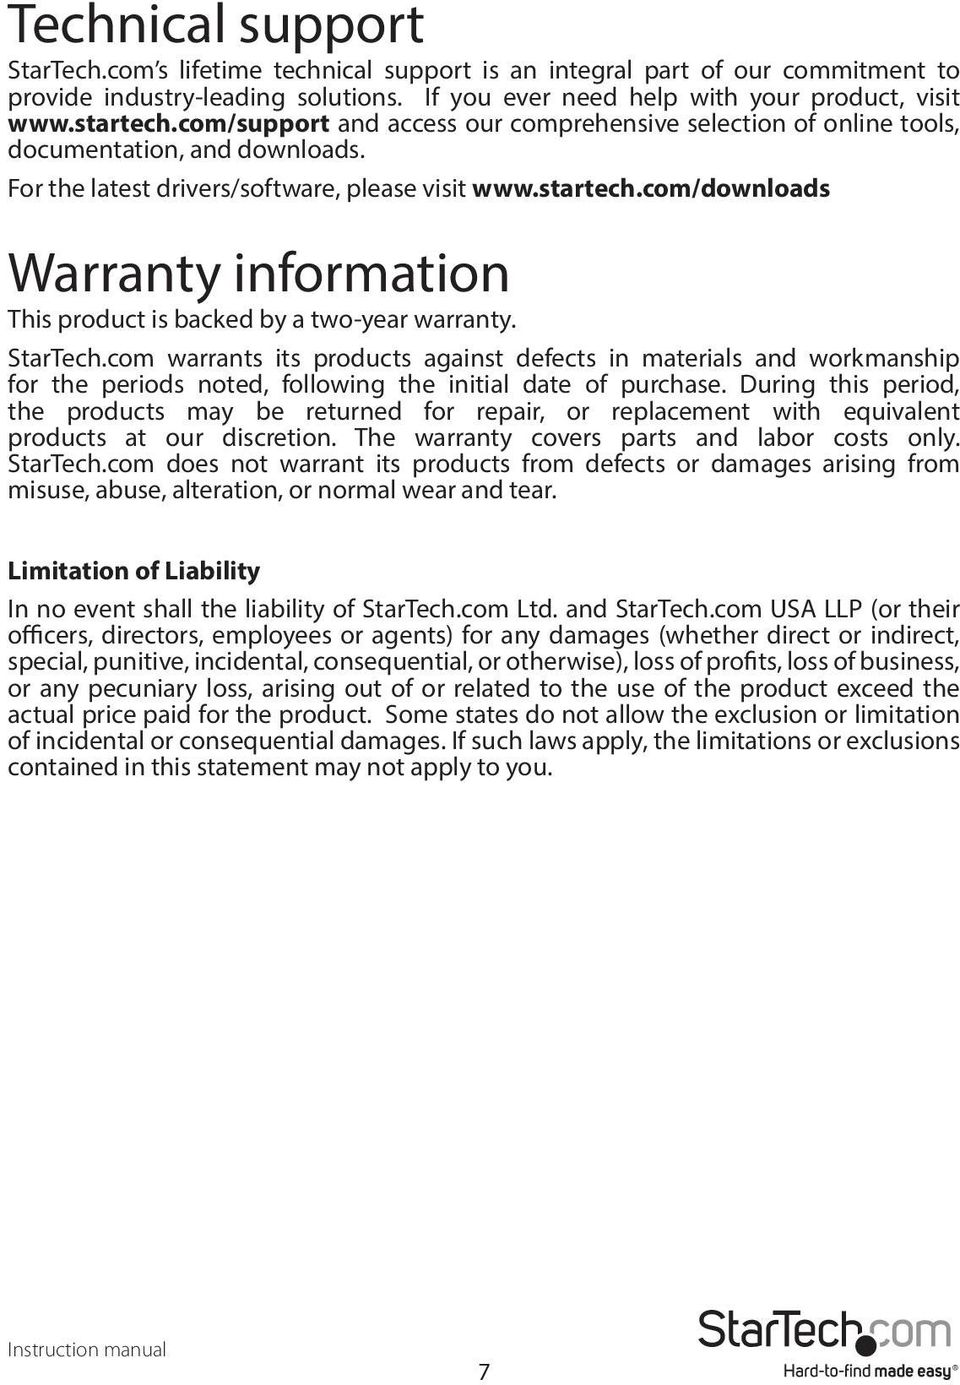 com/downloads Warranty information This product is backed by a two-year warranty. StarTech.